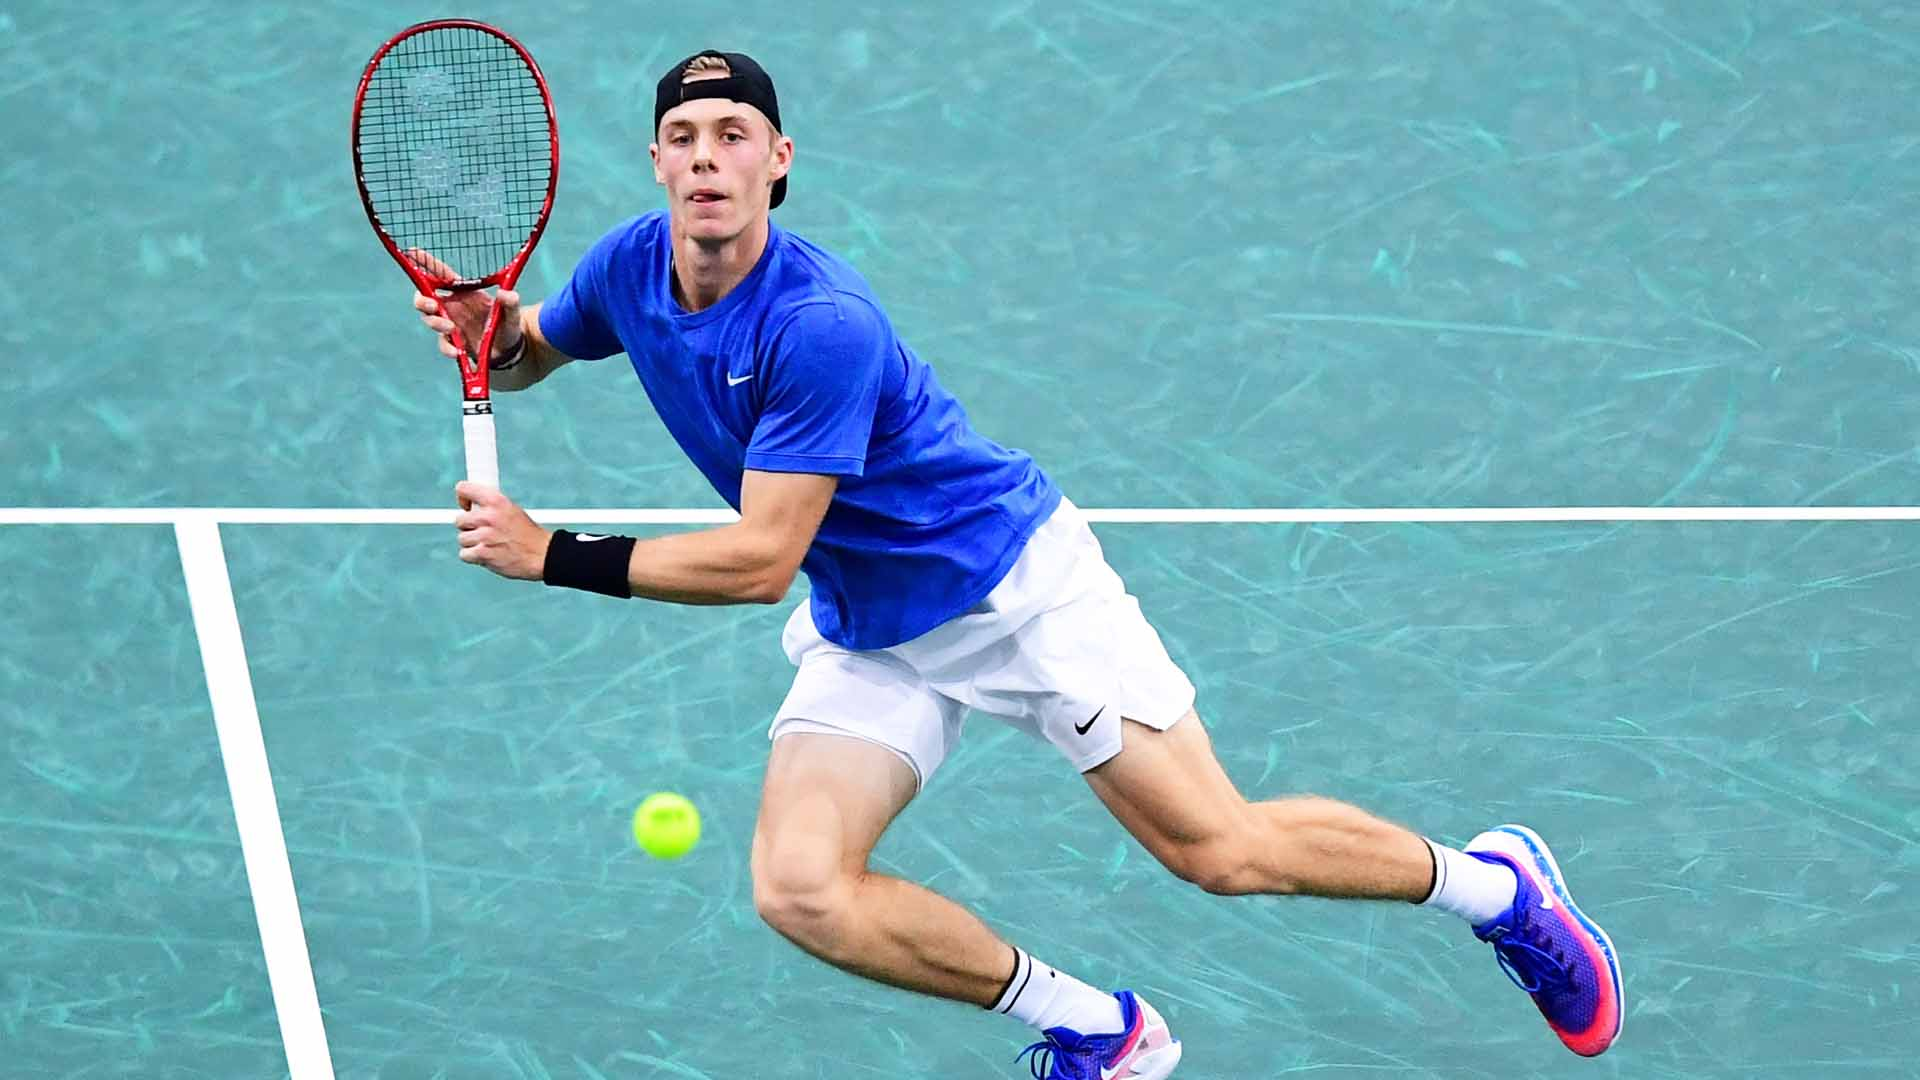 <a href='https://www.atptour.com/en/players/denis-shapovalov/su55/overview'>Denis Shapovalov</a> is aiming to lift his first ATP Masters 1000 trophy this week.